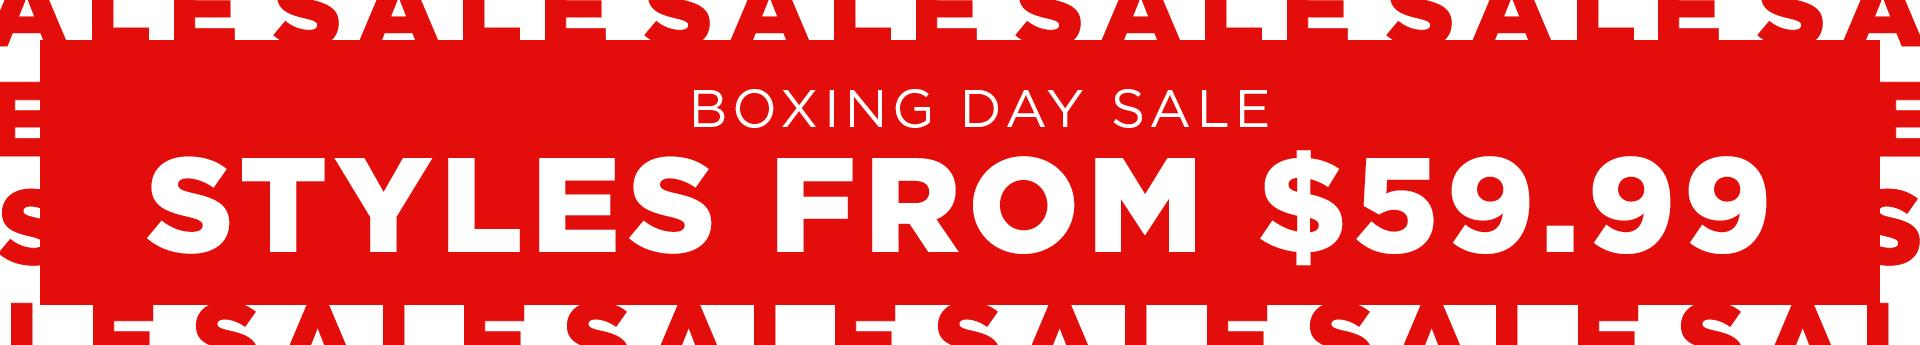 Skechers Boxing Day Sale